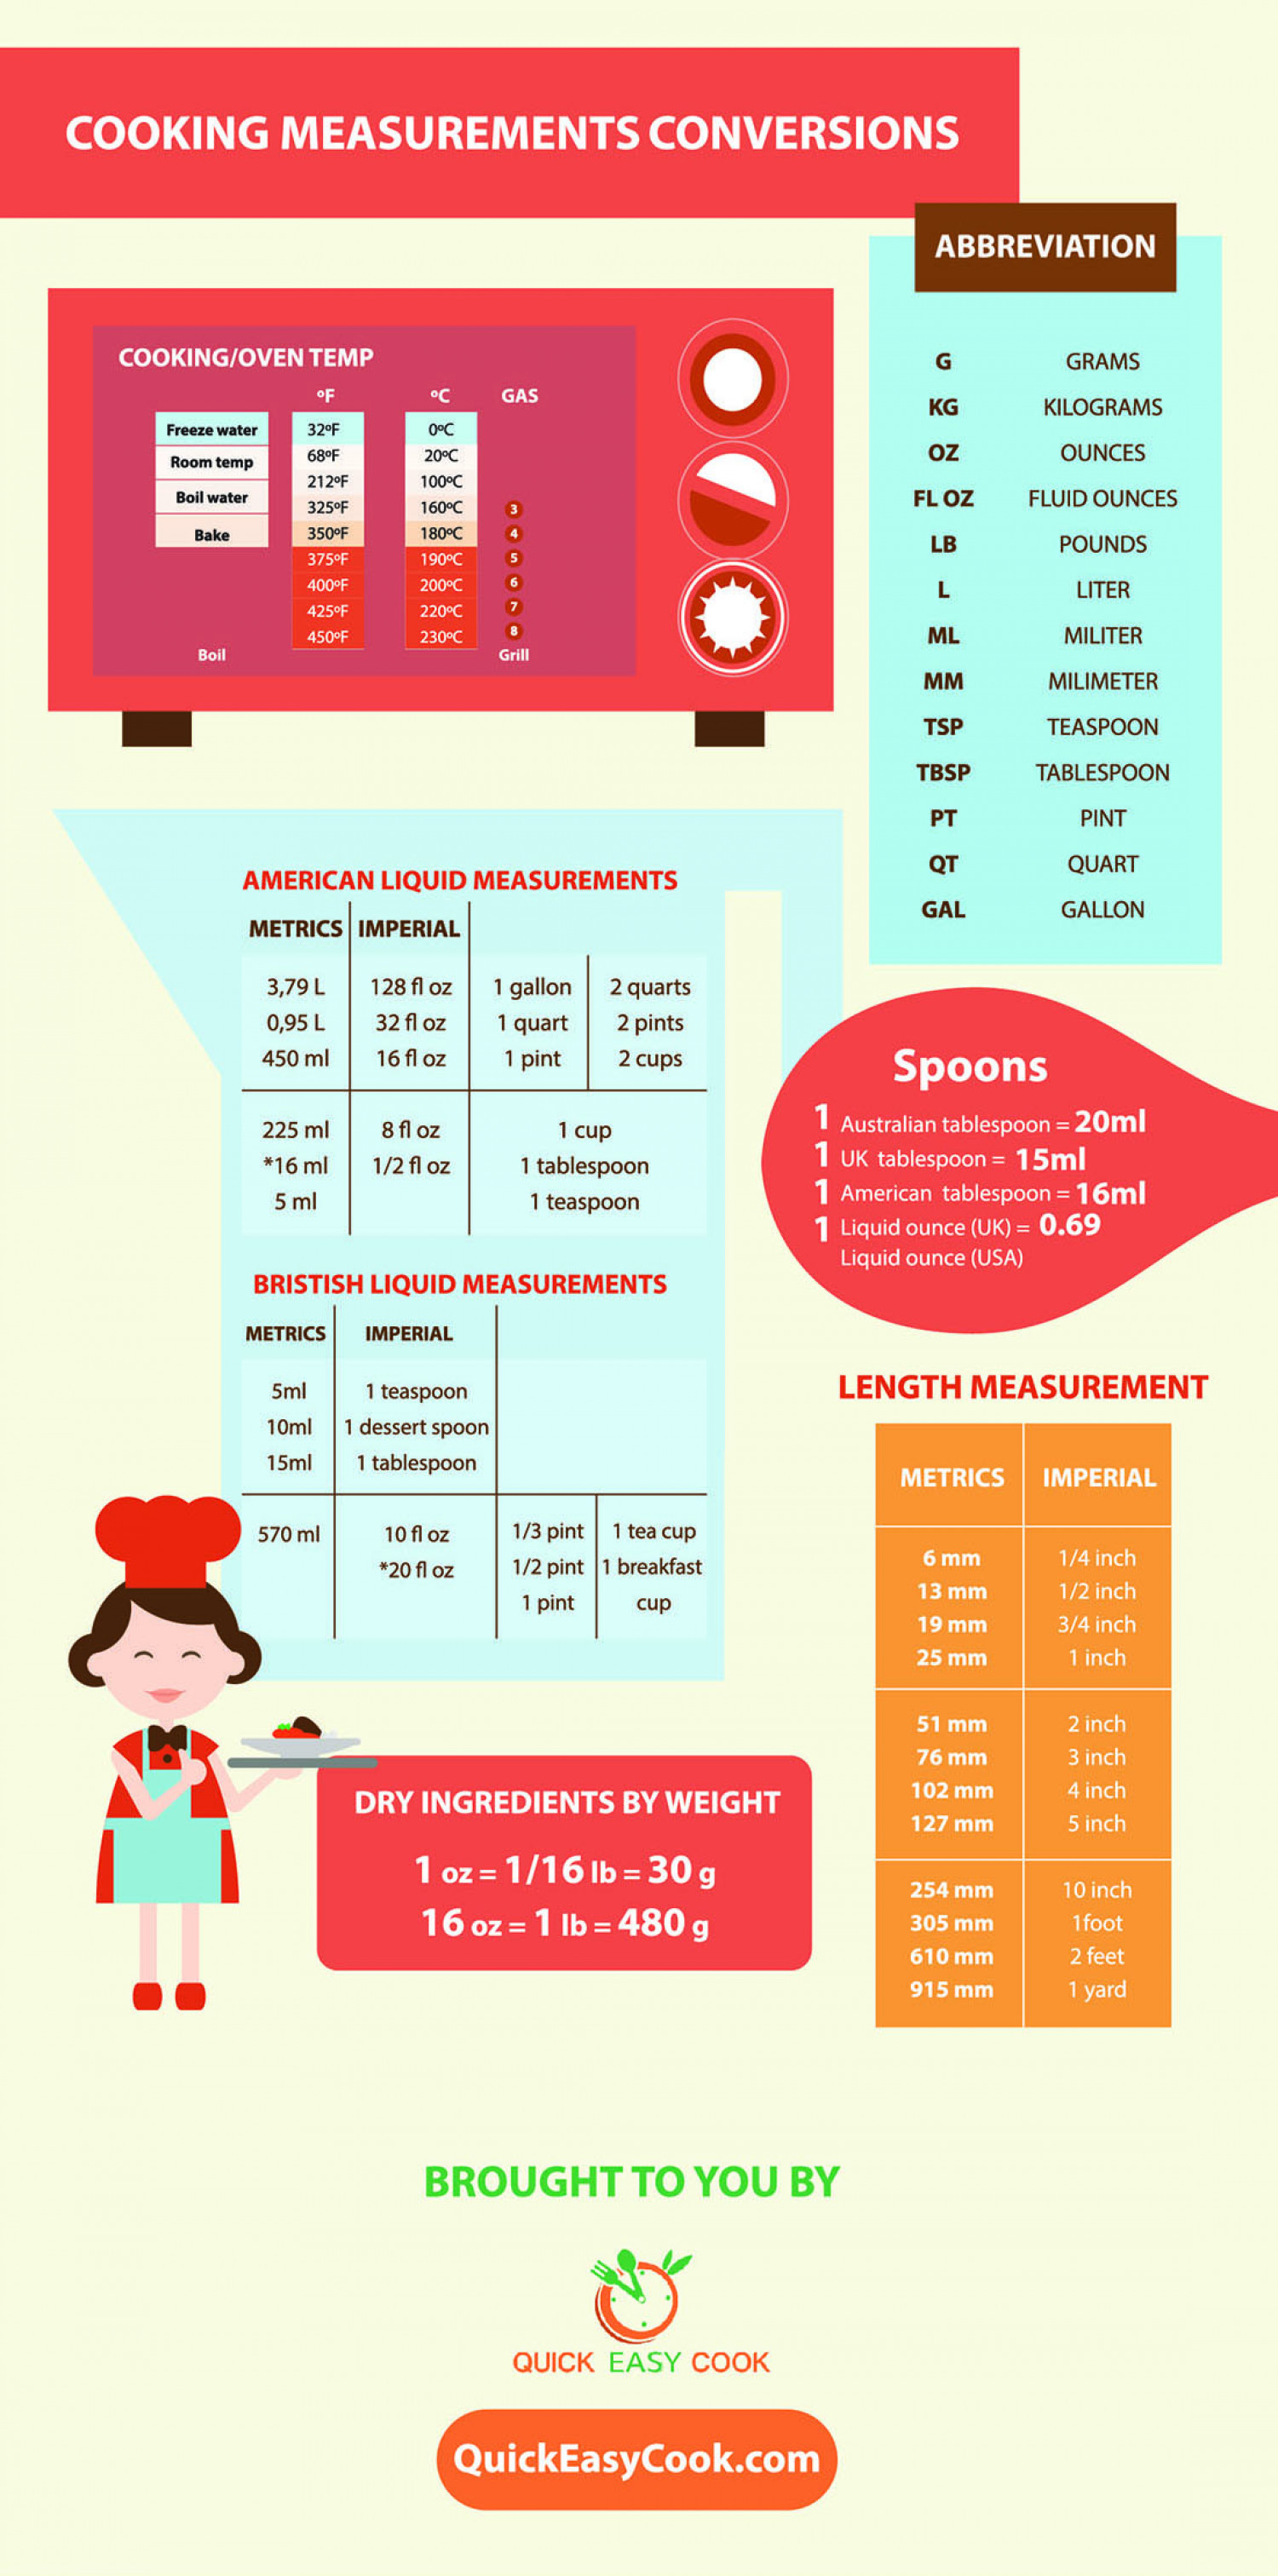 Cooking Measurement and Conversion Infographic